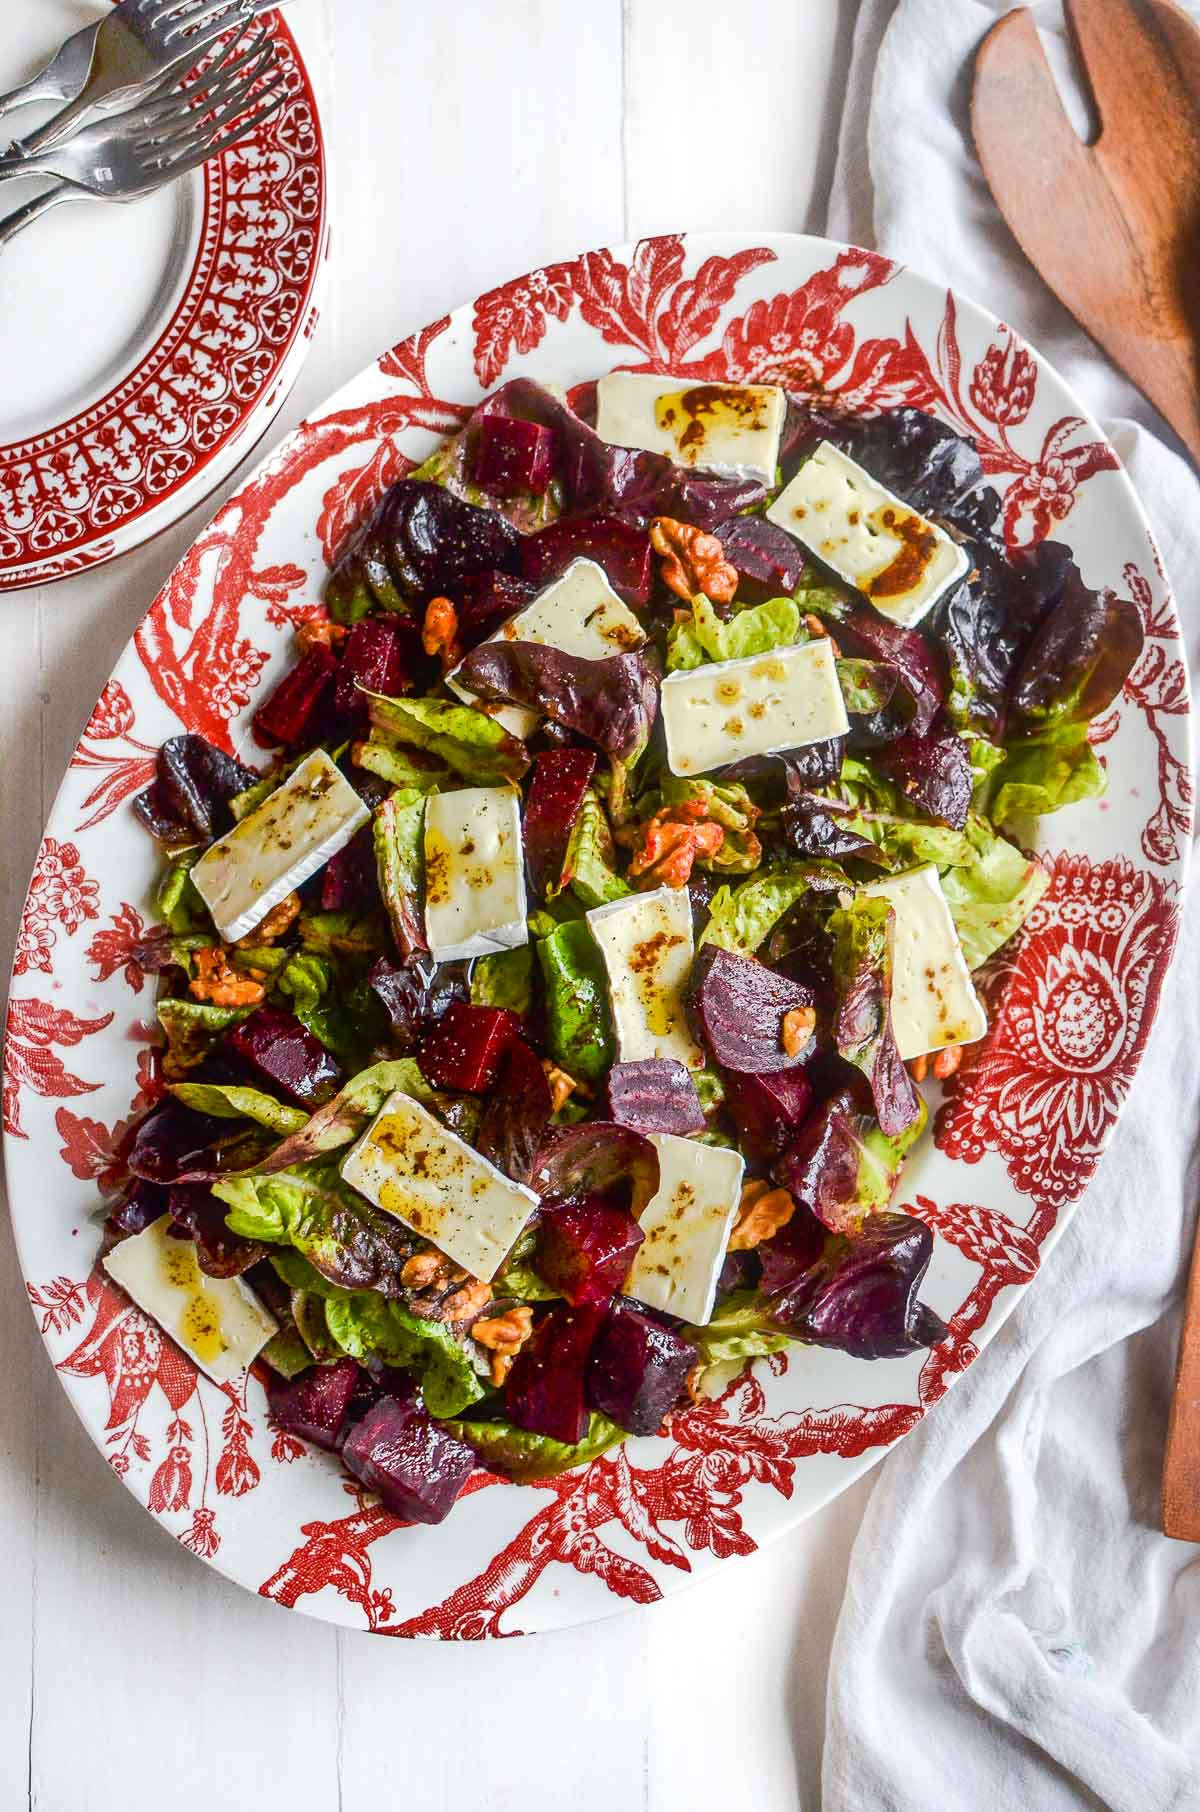 A red patterned platter of roasted beet and brie salad on a white wooden surface.